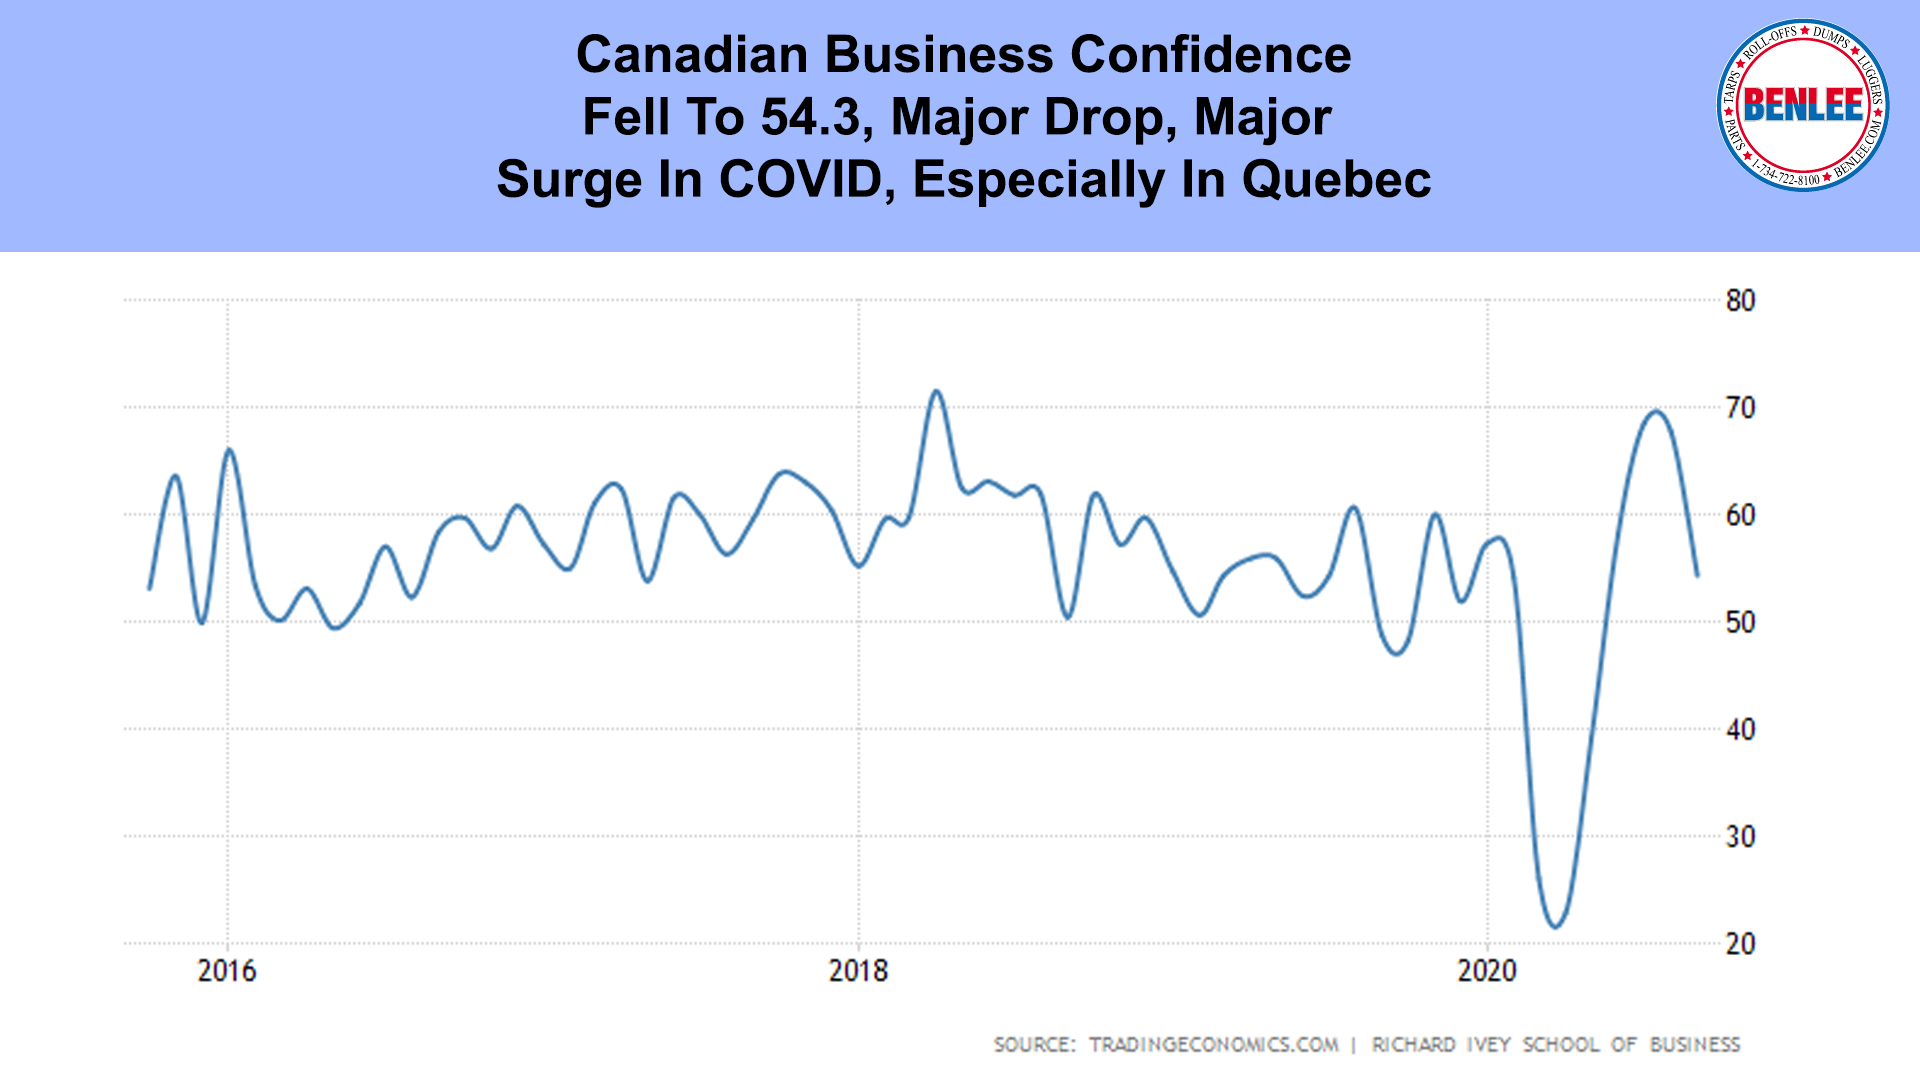 Canadian Business Confidence